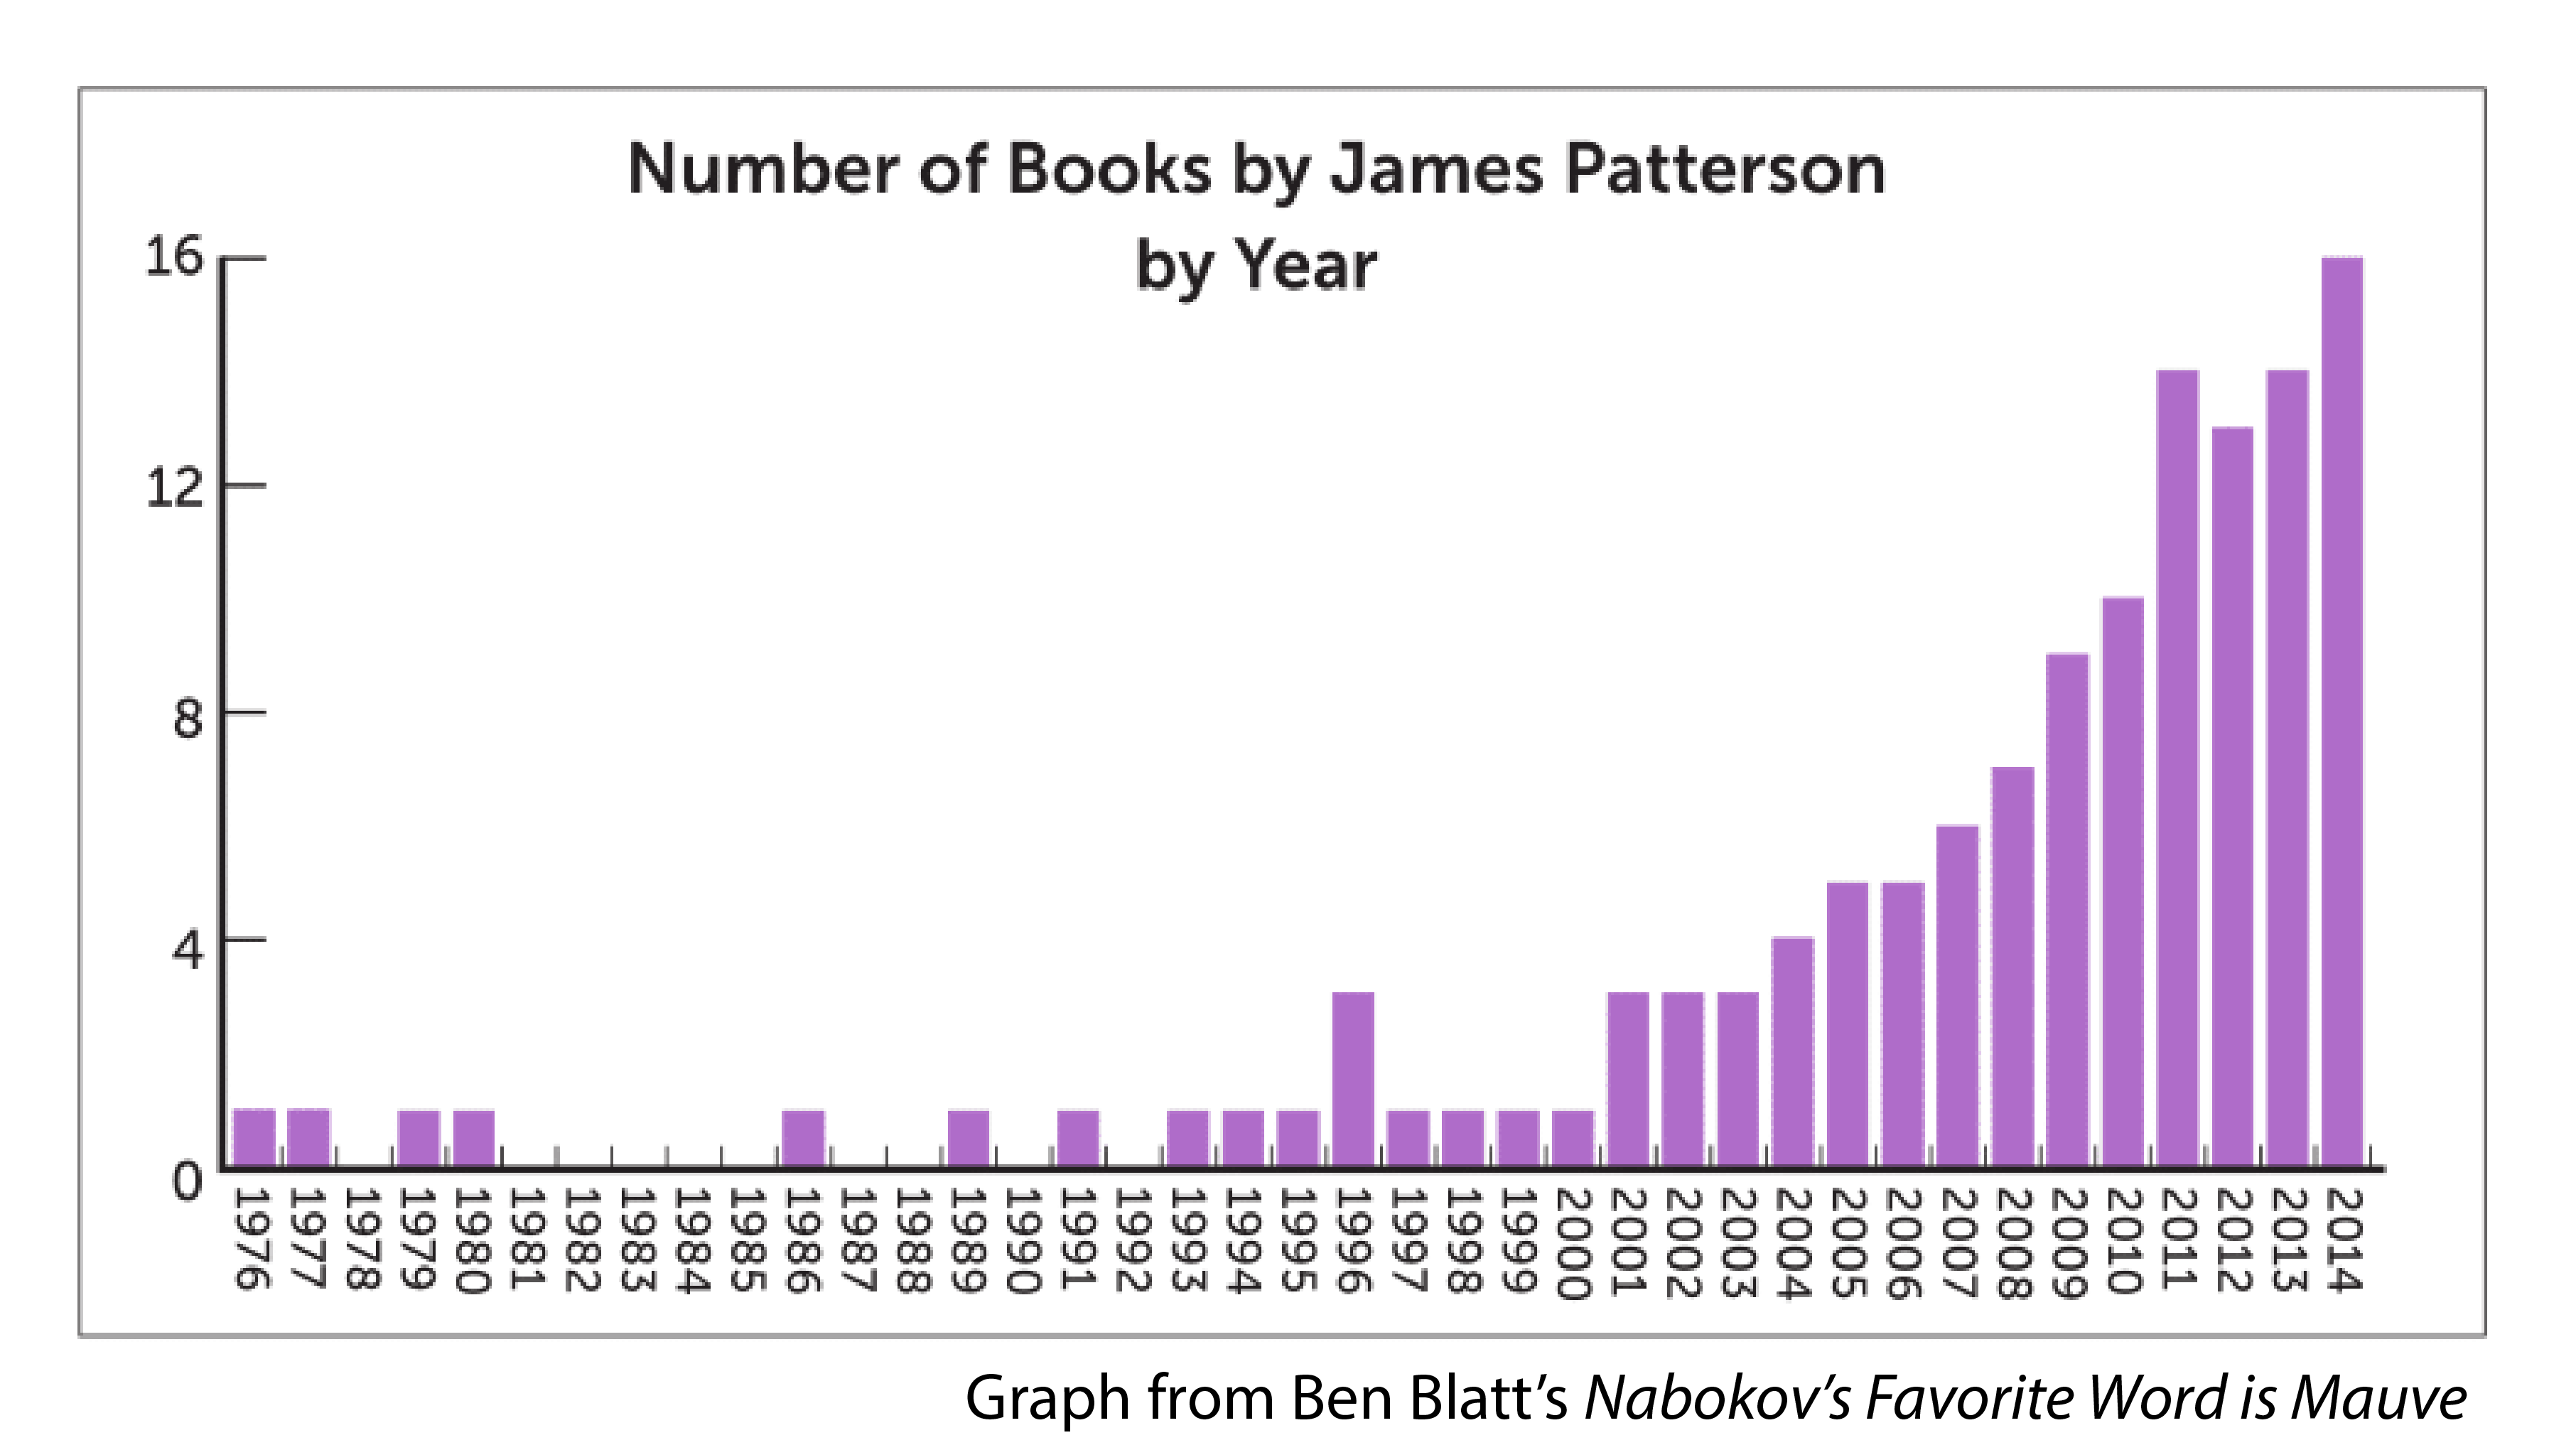 avoiding roald dahl s literary dystopia original essay by ben blatt a graph number of books by james patterson by year